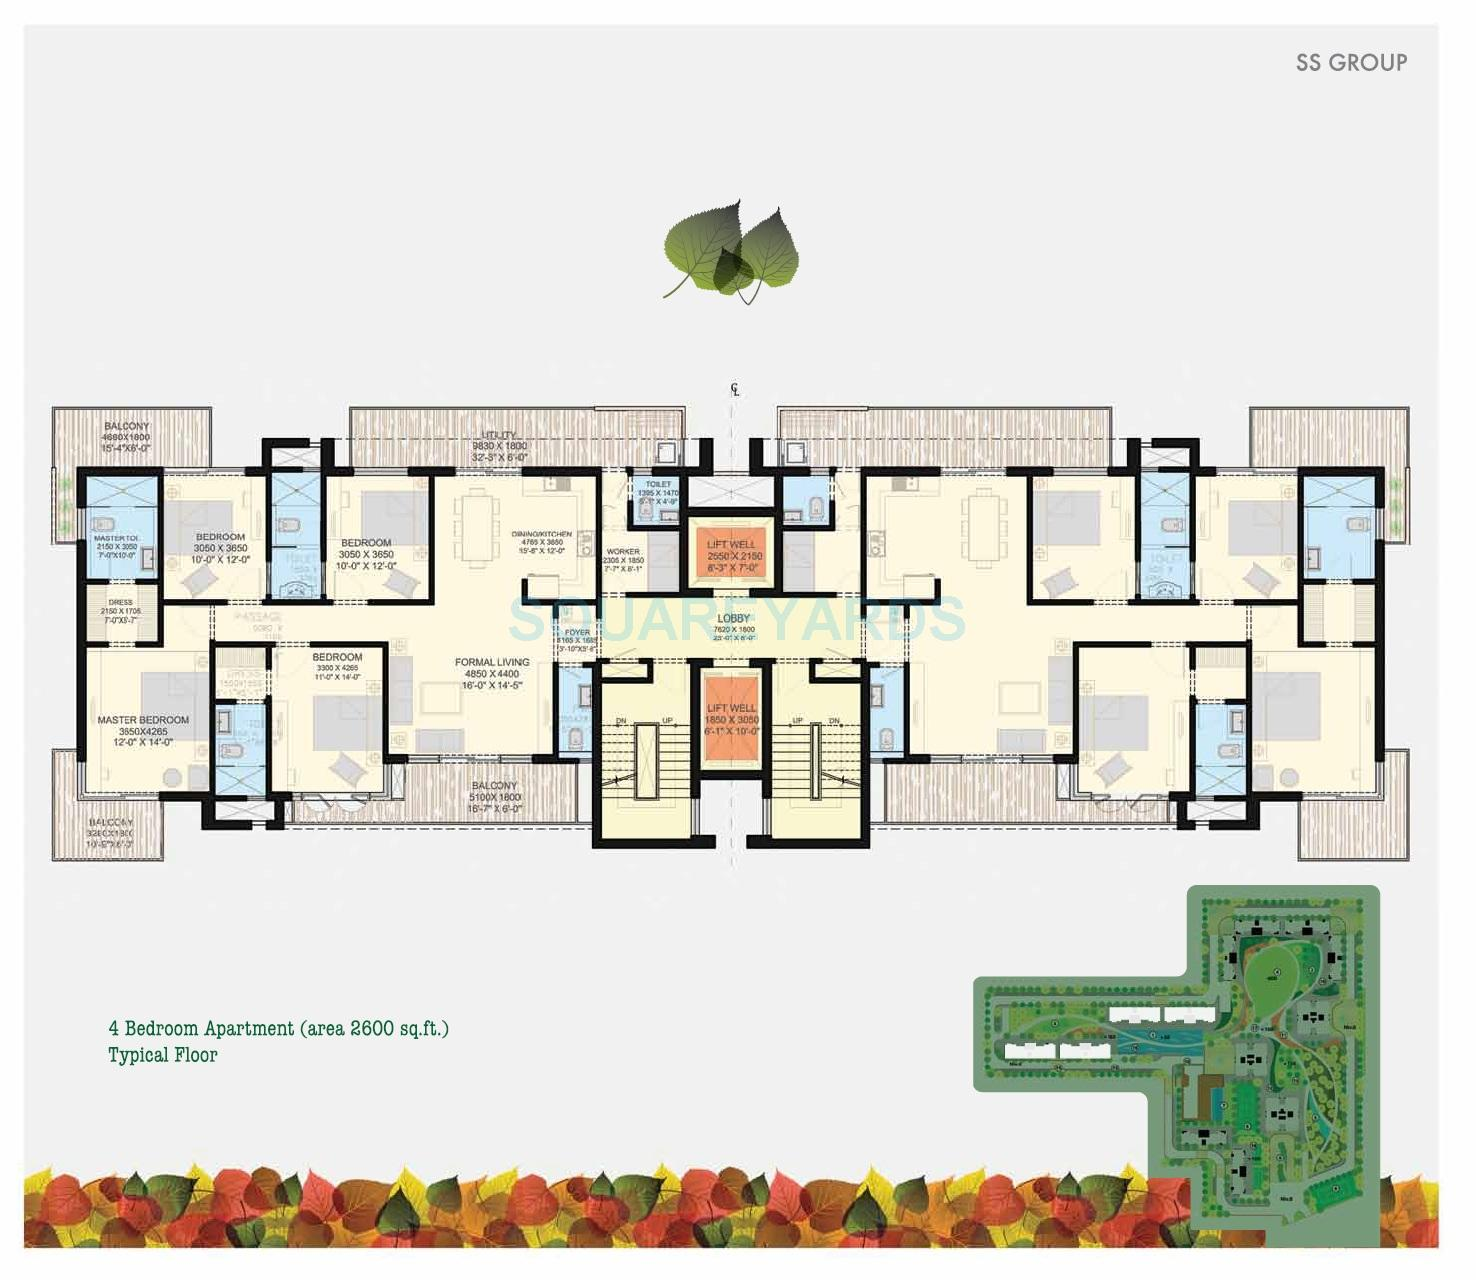 Low Cost Apartment: 4 BHK 2600 Sq. Ft. Apartment For Sale In SS The Leaf At Rs